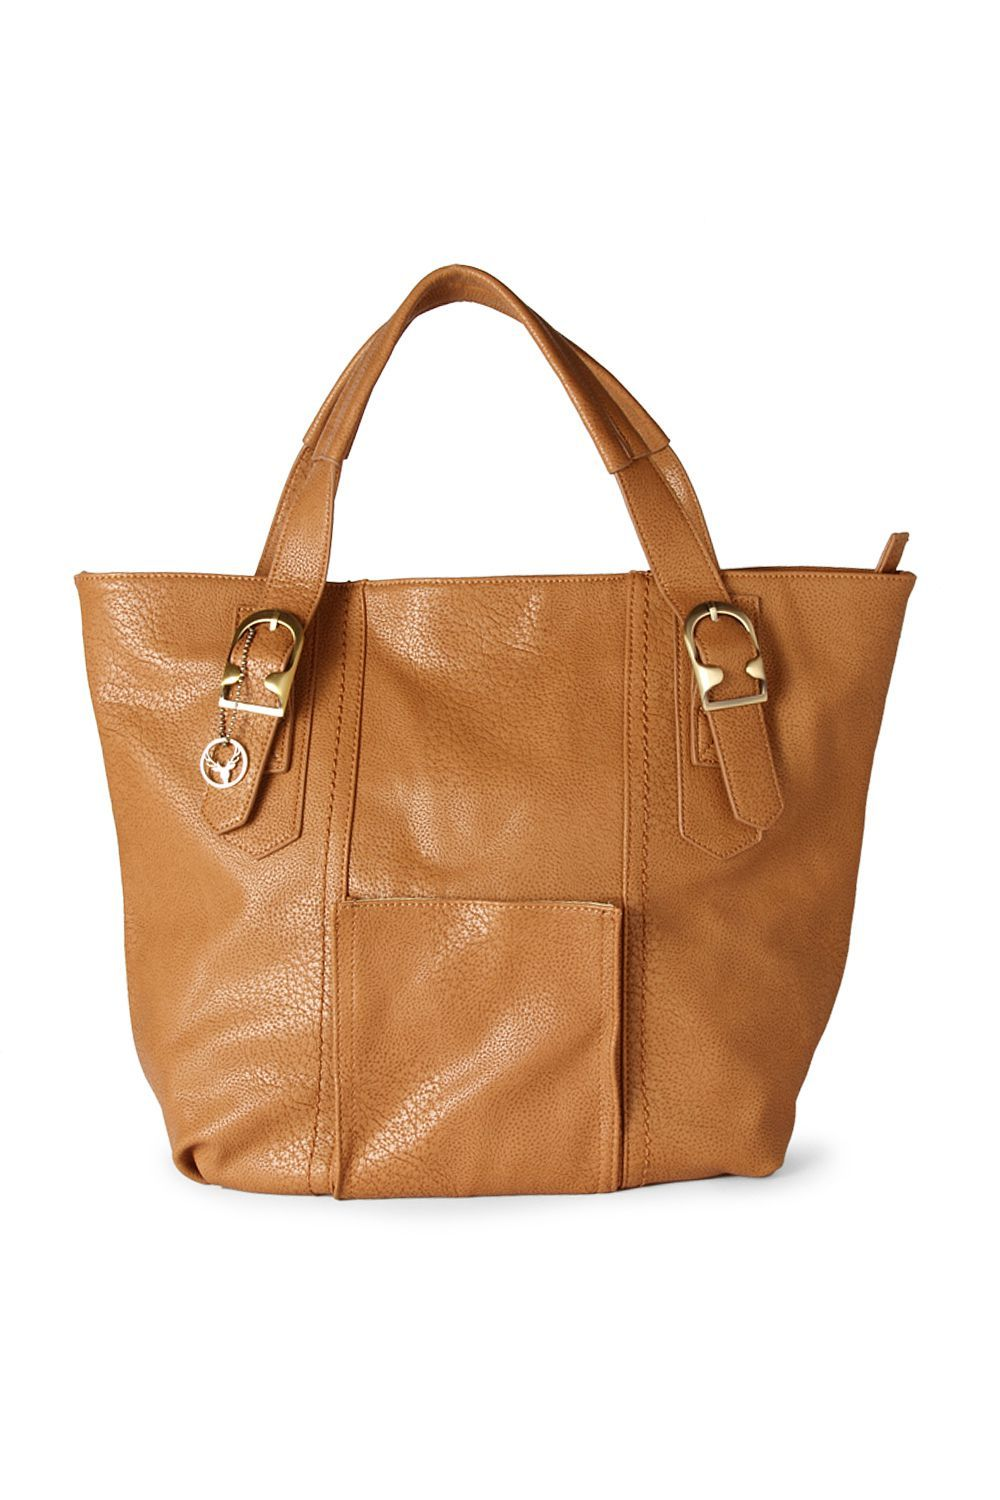 Allen Solly Bags Stylish Tote Bag For Women At Trendin